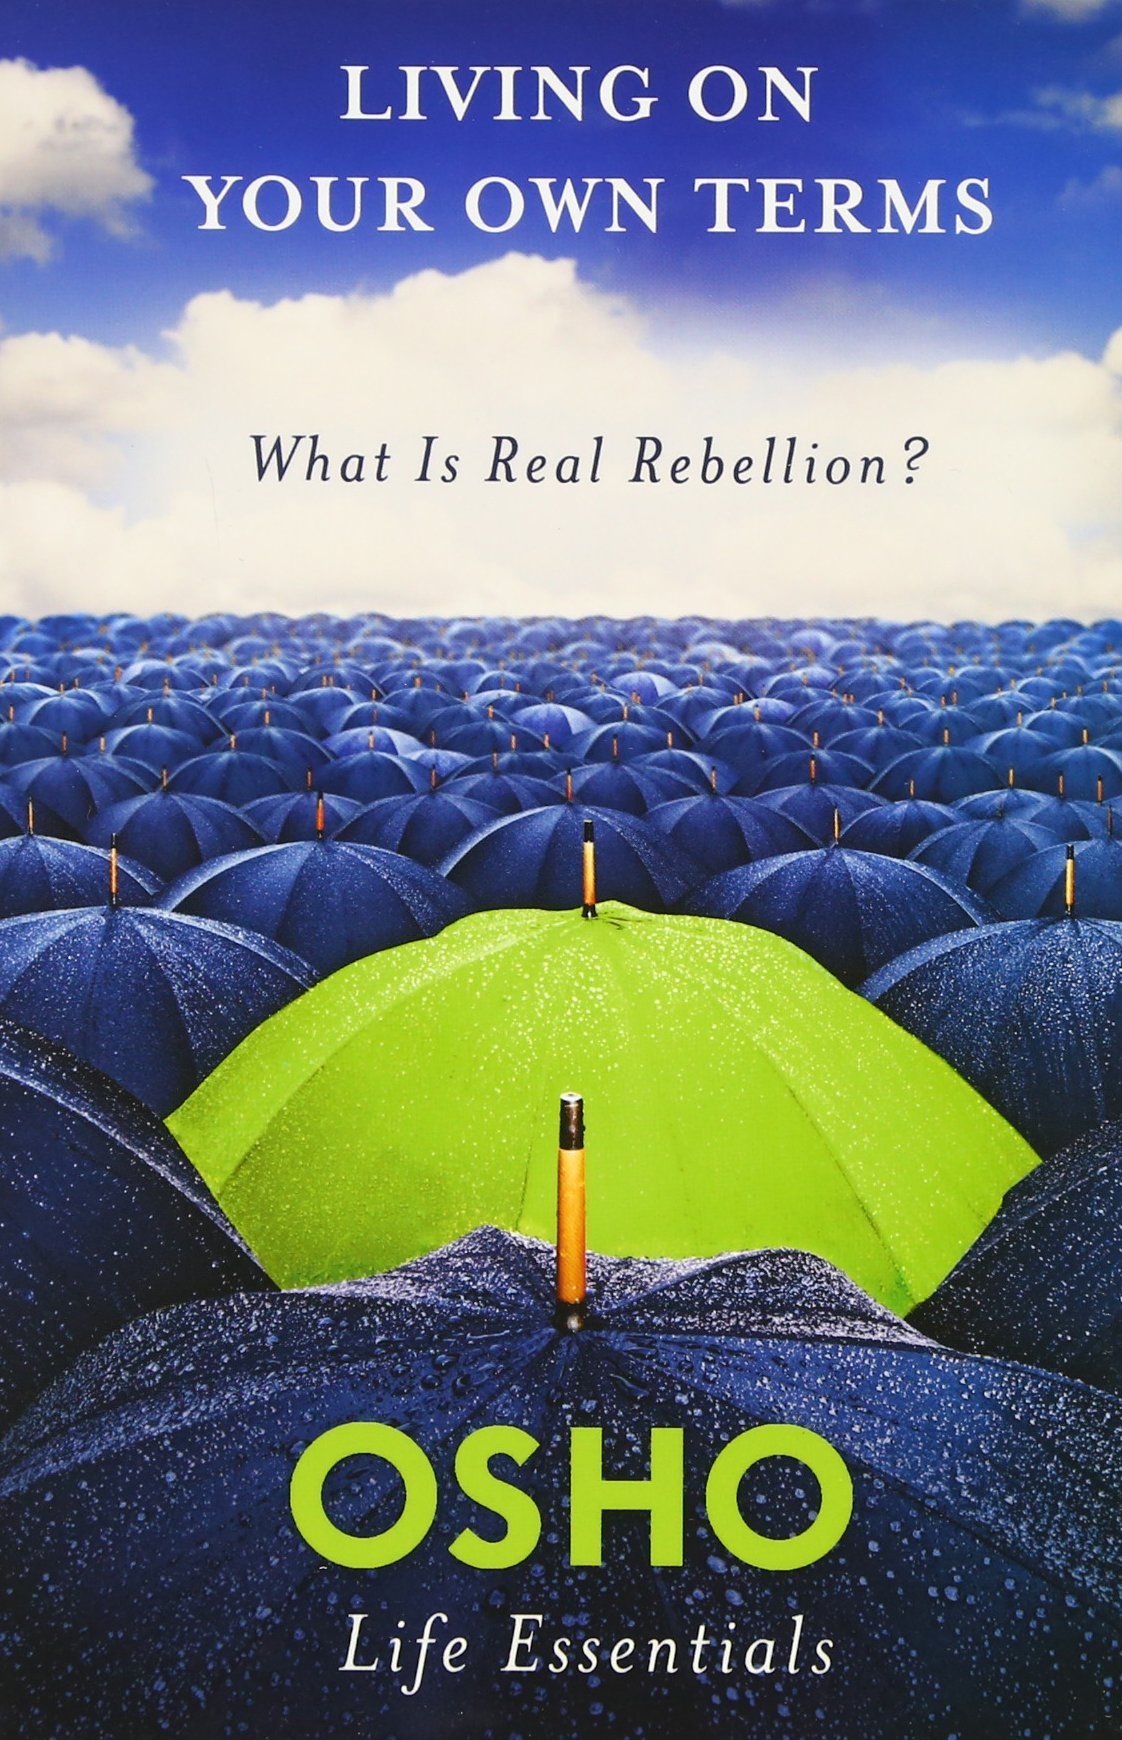 Amazon.com: Living on Your Own Terms: What Is Real Rebellion? (Osho Life Essentials) (9780312595500): Osho: Books